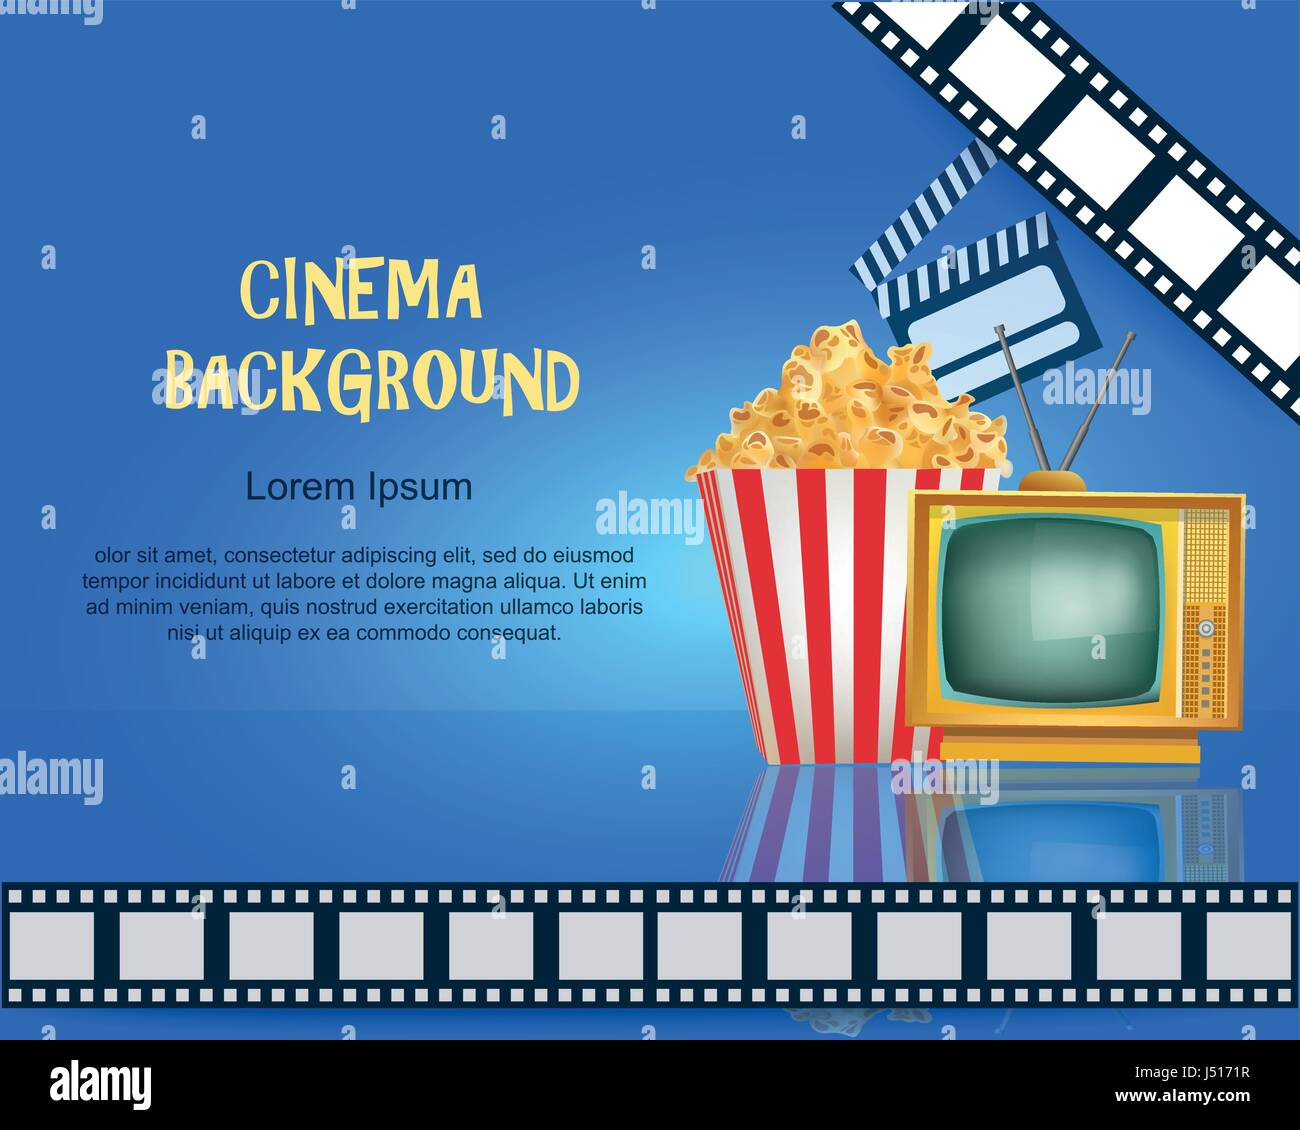 Realistic Cinema Background Movie Premiere Poster Template Banner With TV Popcorn Clapper And Film Vector Detailed Illustration On Blue Backgroun